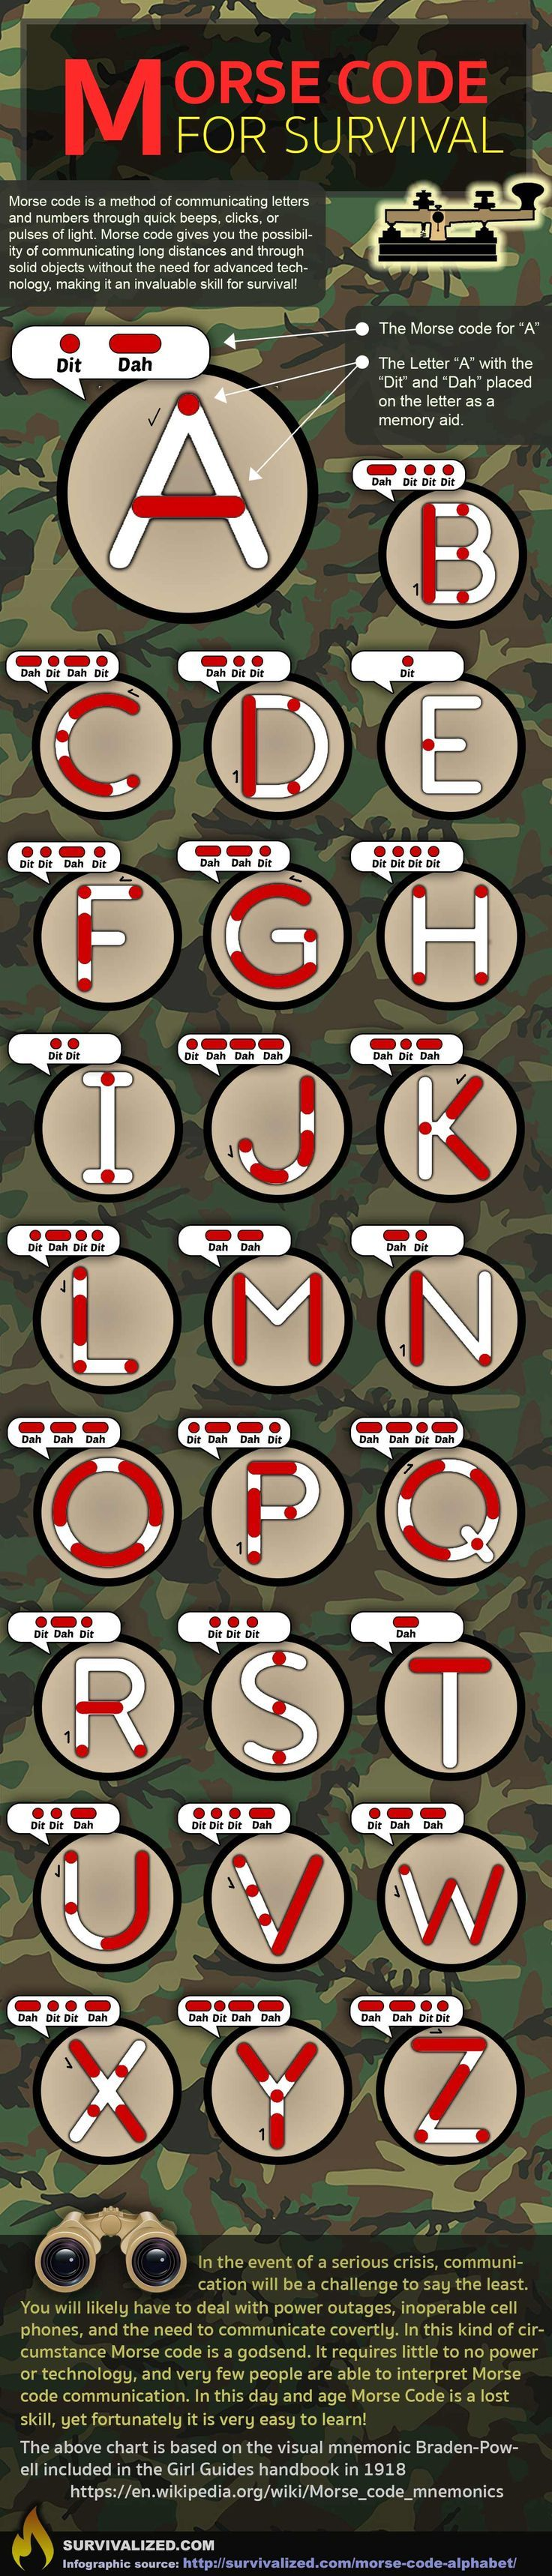 Knowing the Morse Code Alphabet could save your life in a disaster situation, check it out at http://survivalized.com/morse-code-alphabet/